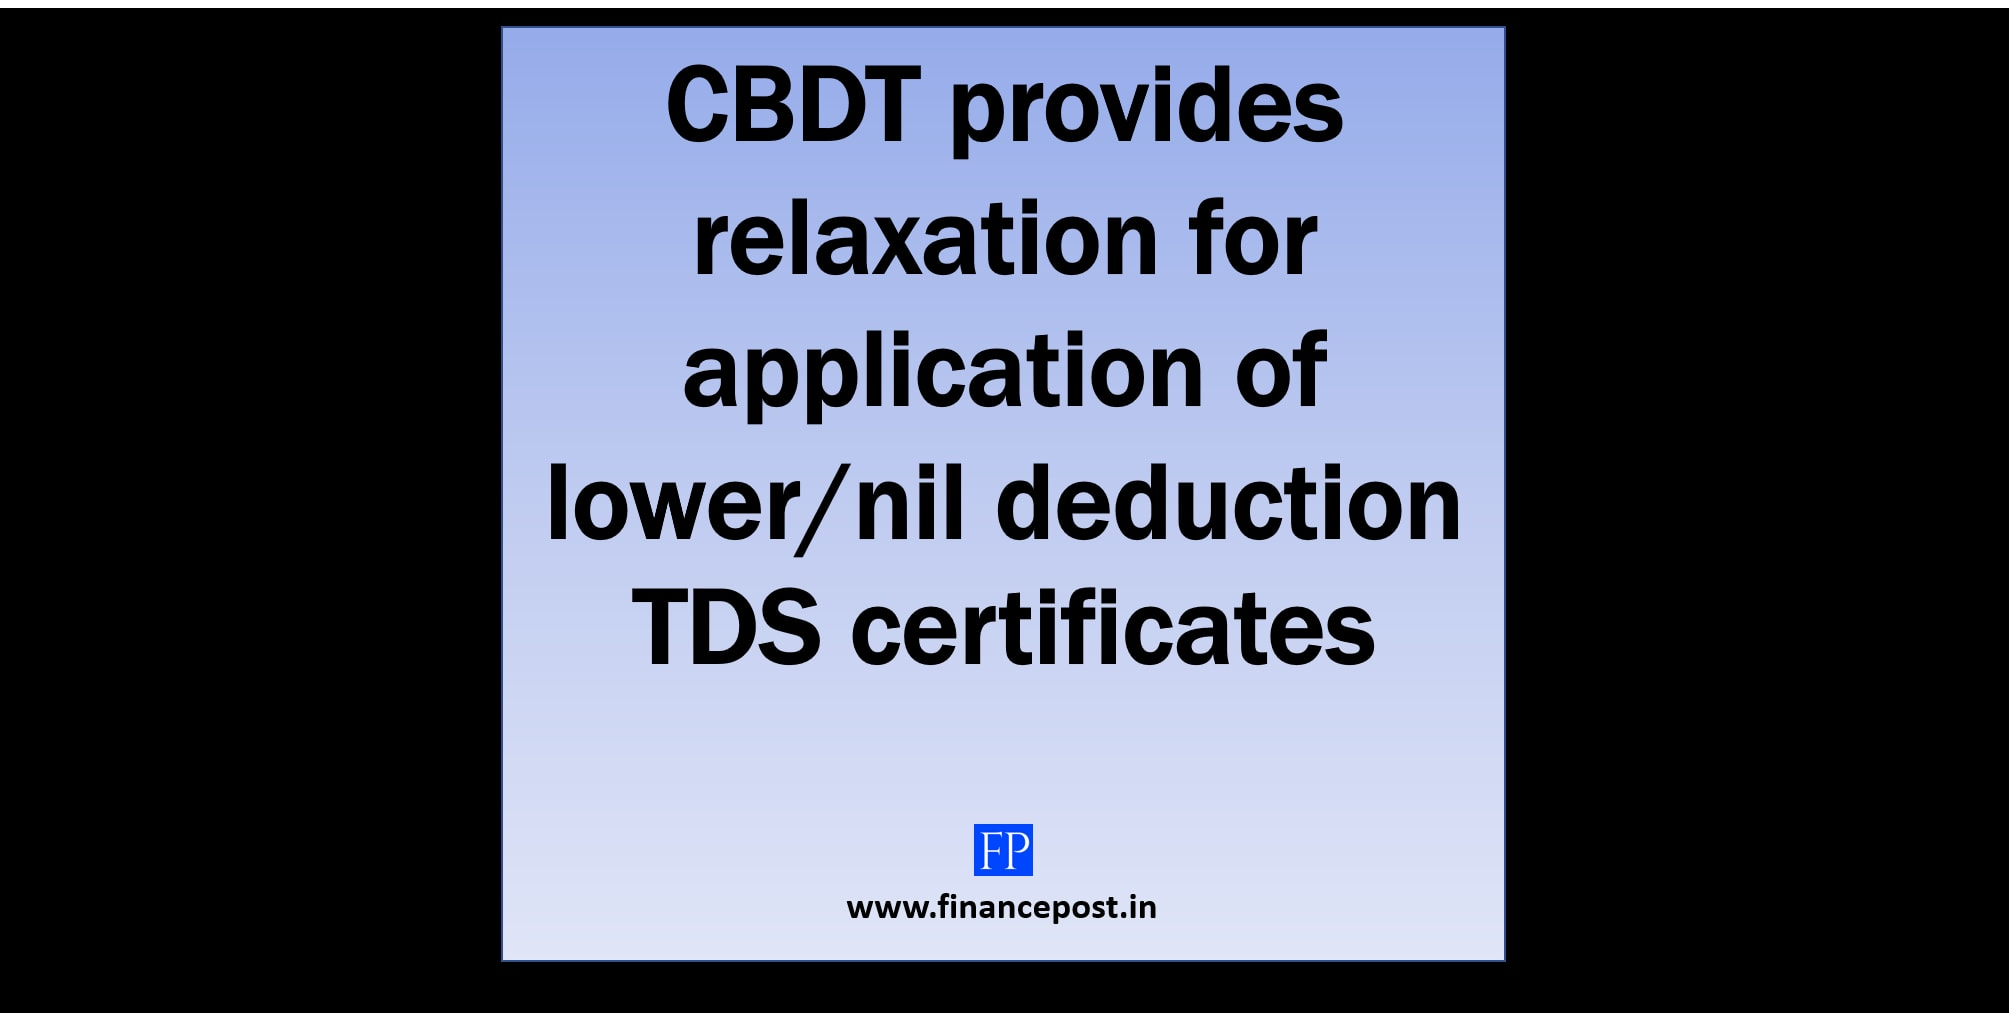 CBDT provides relaxation for application of lower/NIL deduction TDS certificates w.r.t. FY 2020-21